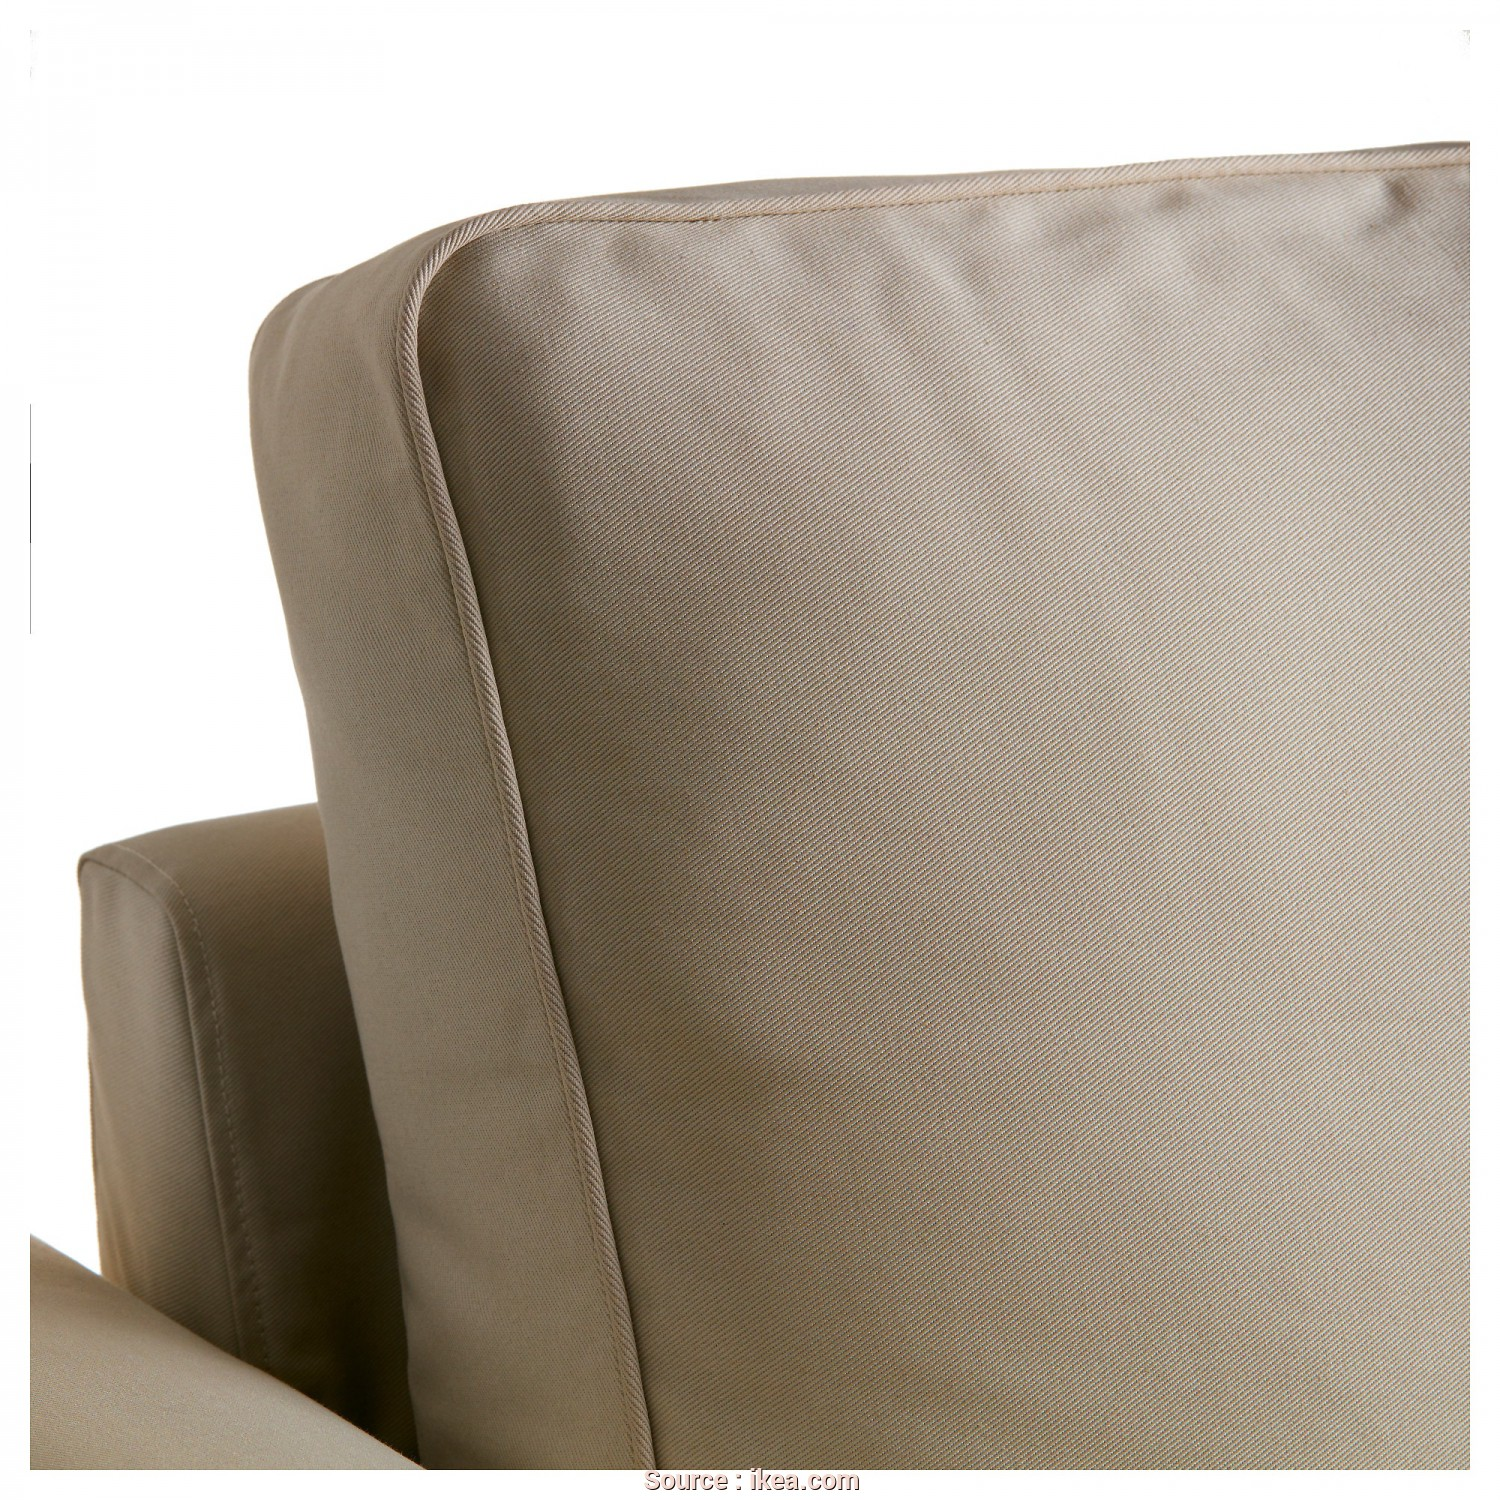 Ikea Online Backabro, Completare IKEA BACKABRO Sofa, With Chaise Longue Readily Converts Into A Bed